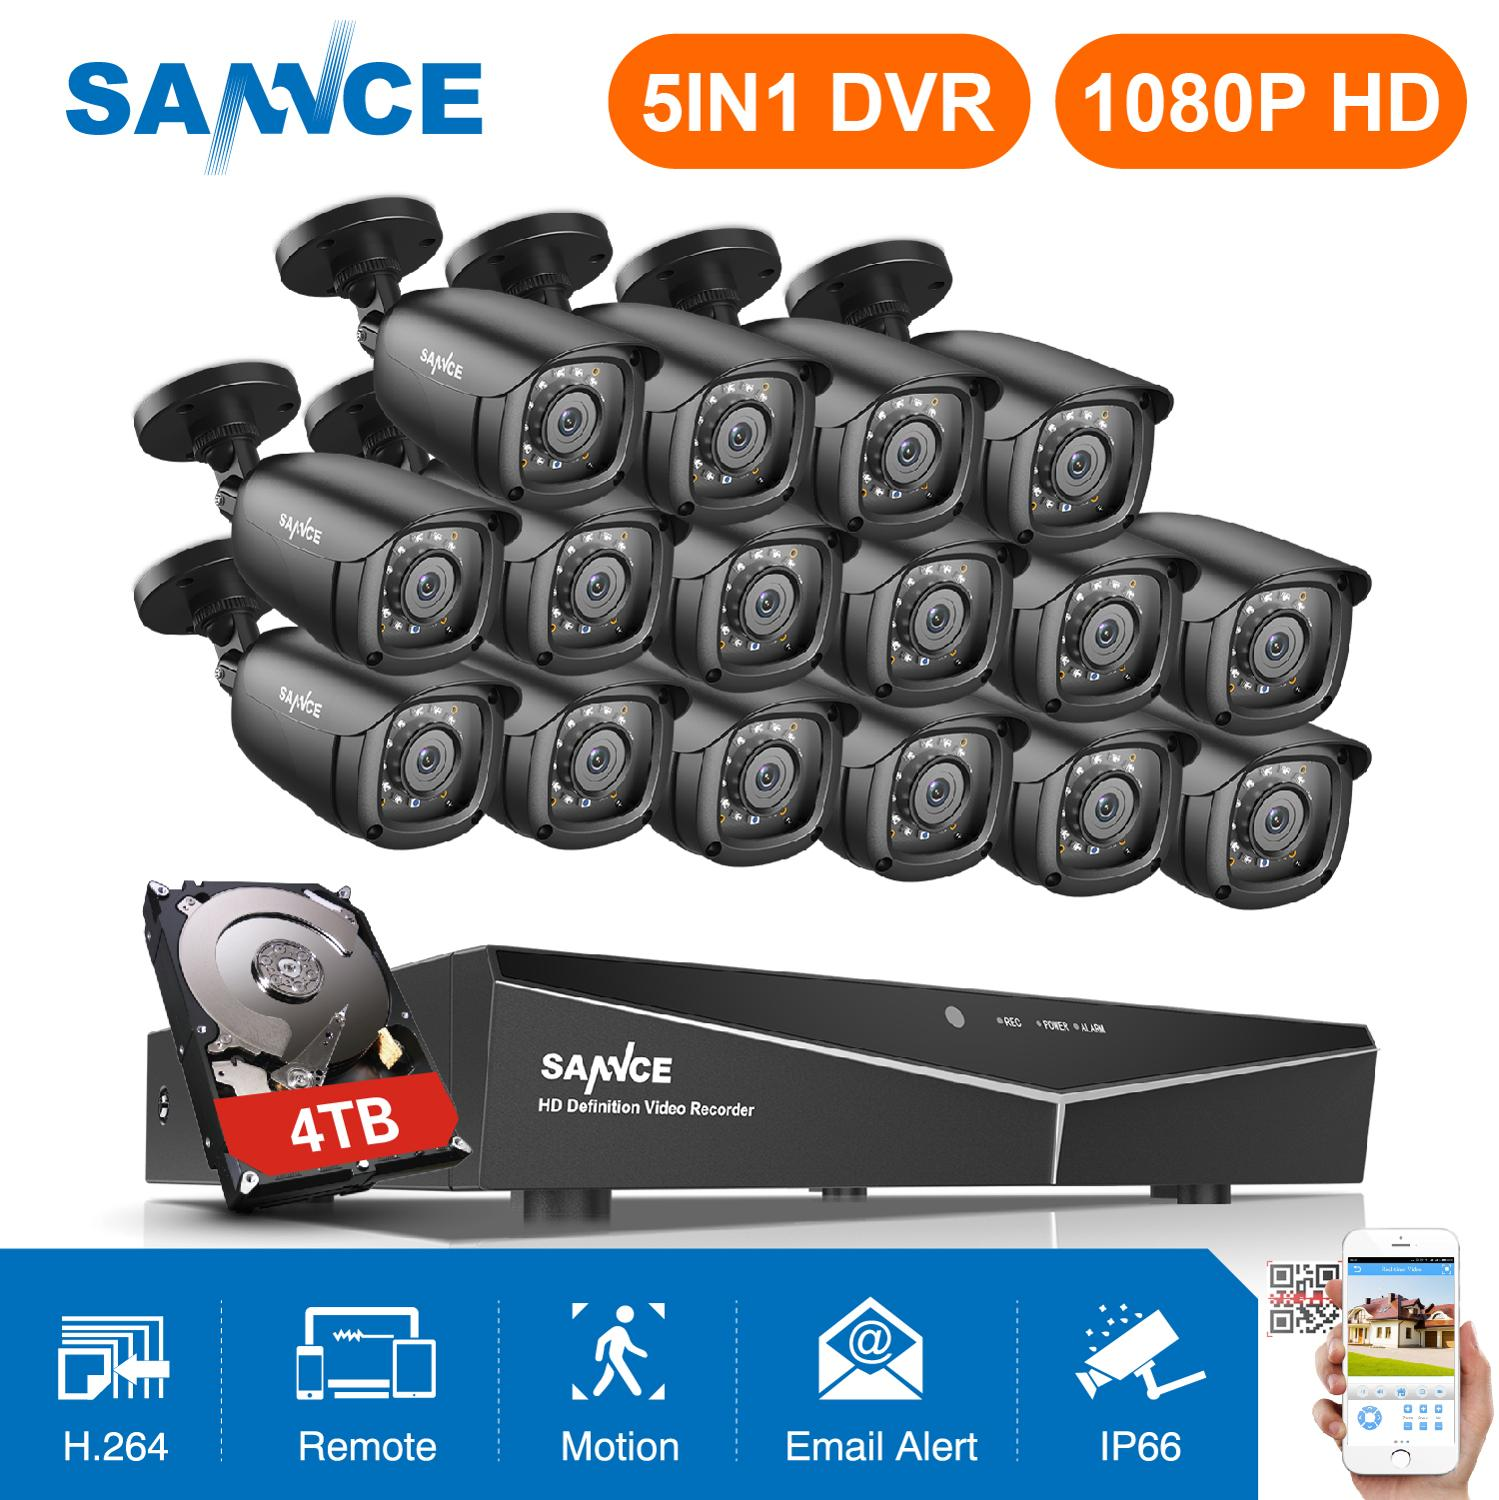 SANNCE 16CH HD 108P CCTV System 1080P HDMI Output CCTV DVR 16pcs 2MP Security Cameras IR Night Waterproof Surveillance Kit